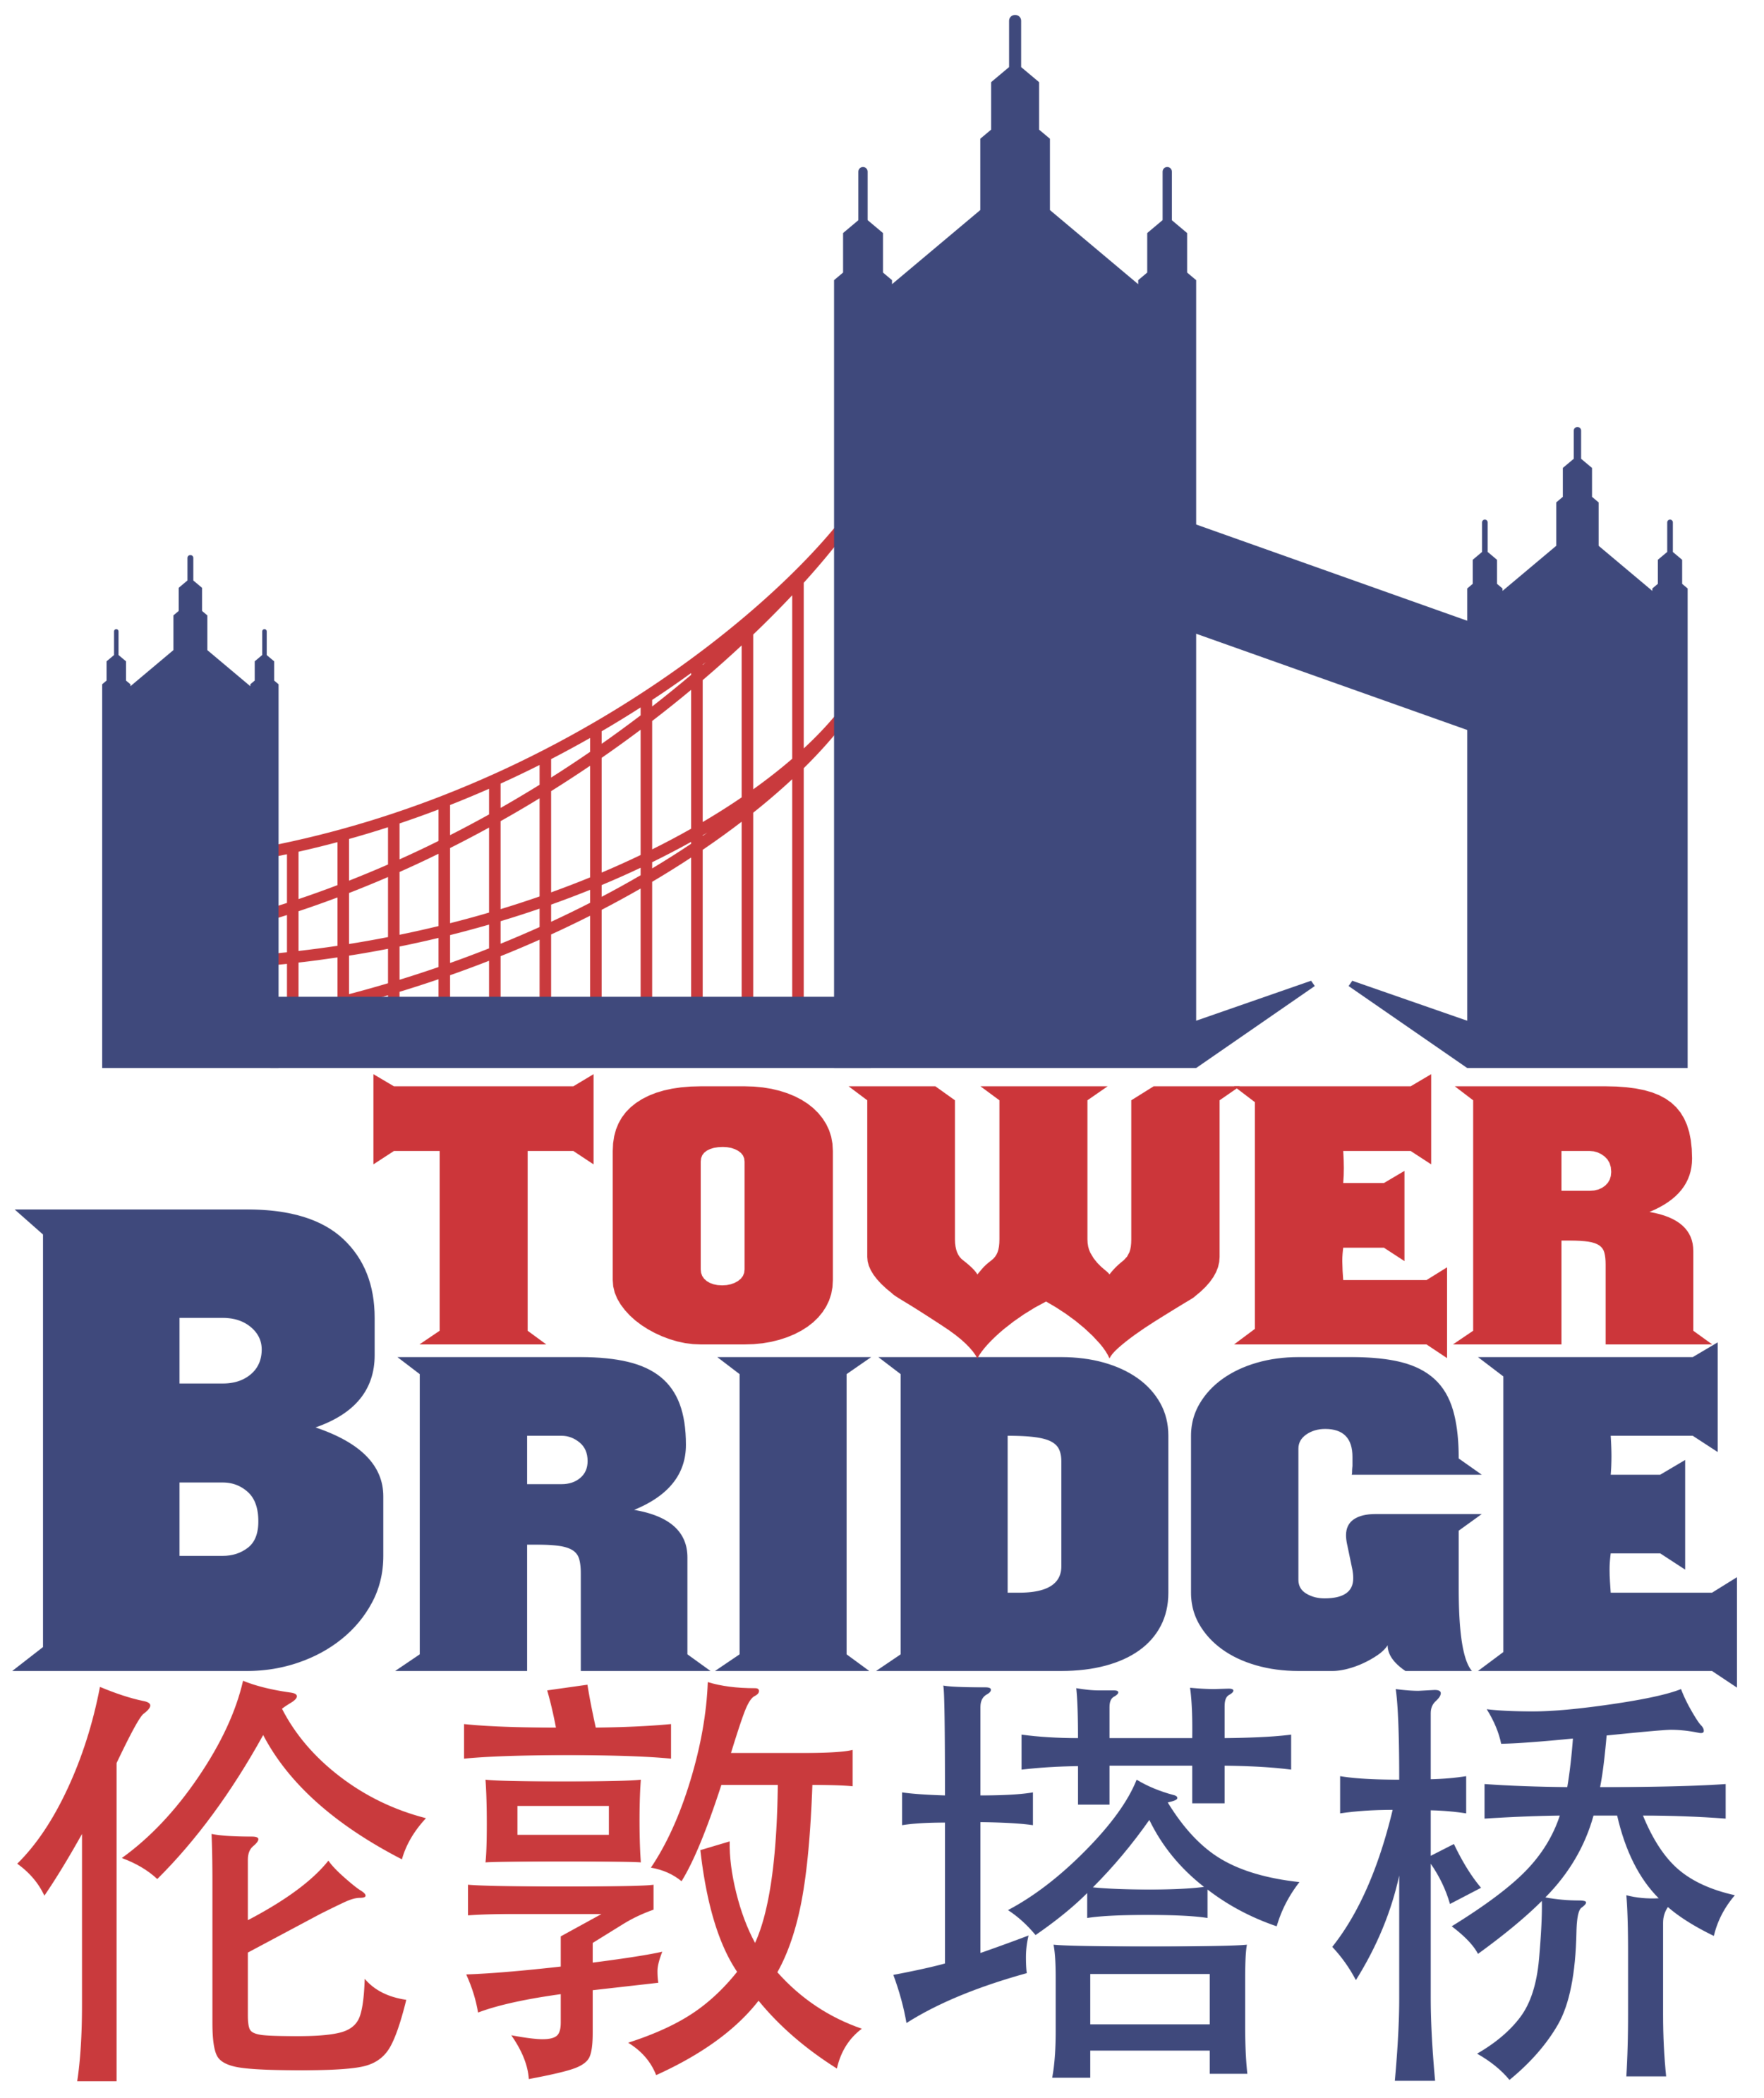 Events Sponsor - Sister pub to our main sponsor (One for the Road) Tower Bridge's support is very much appreciated.